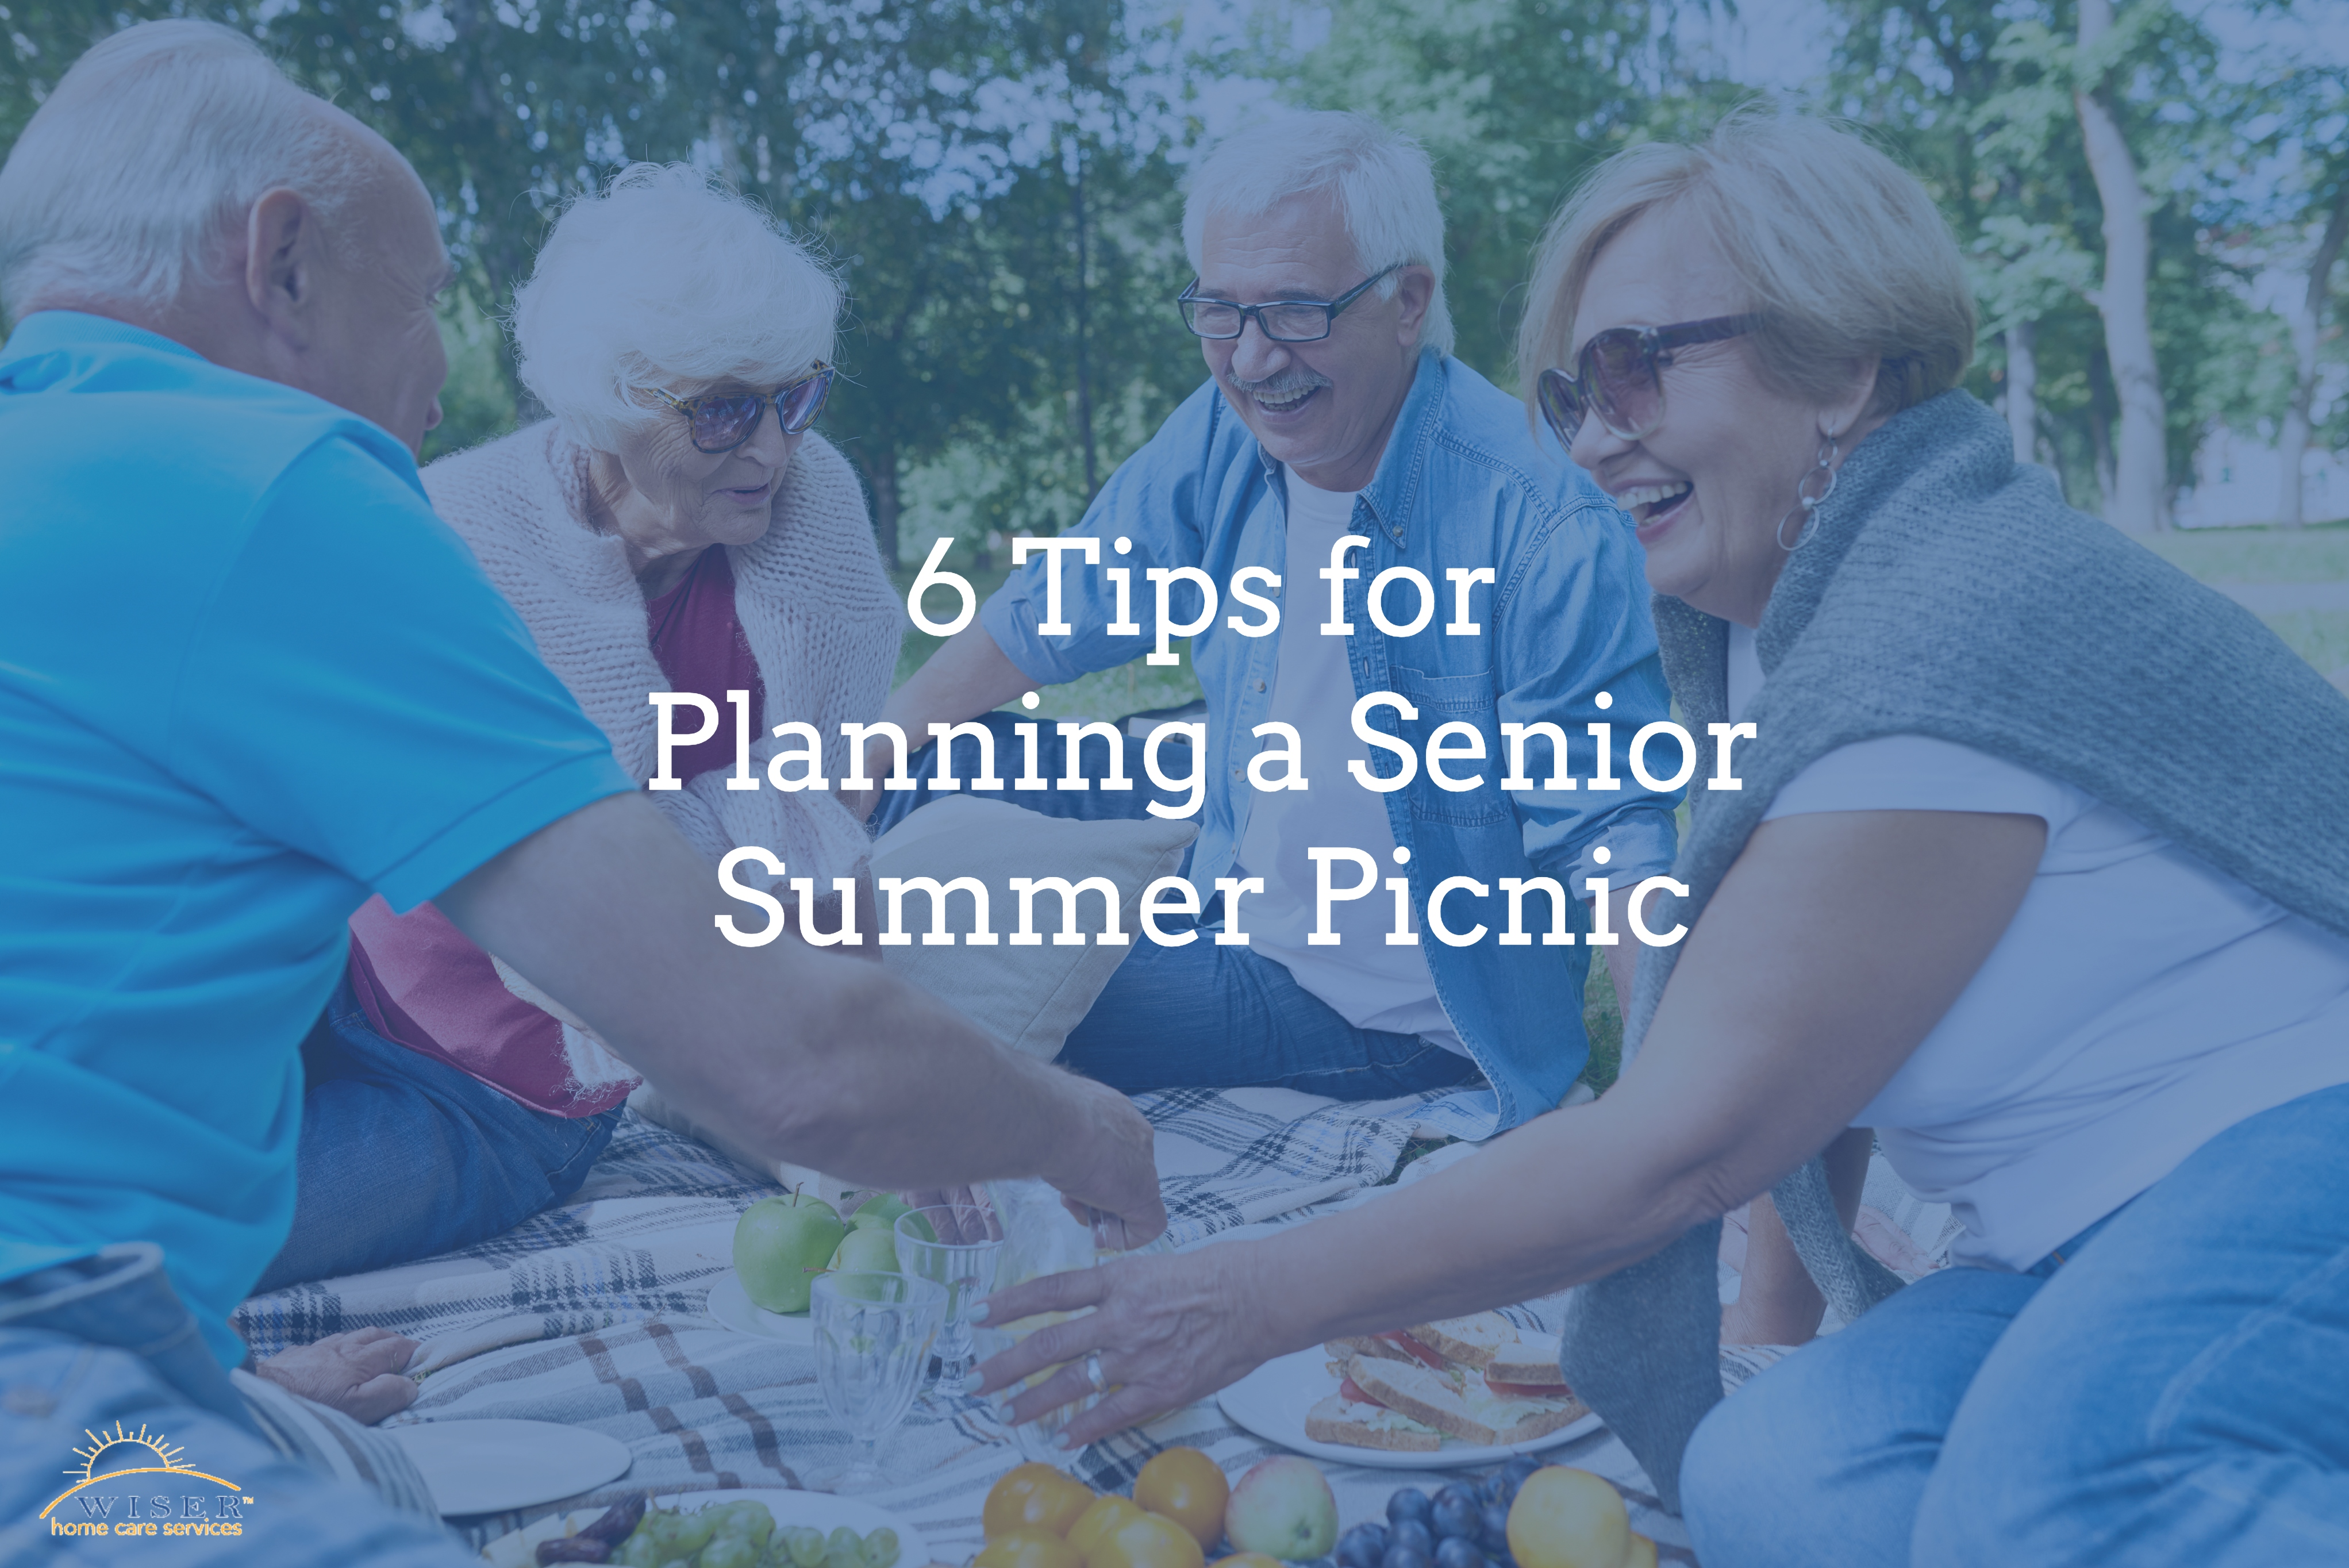 6 Tips for Planning a Senior Summer Picnic